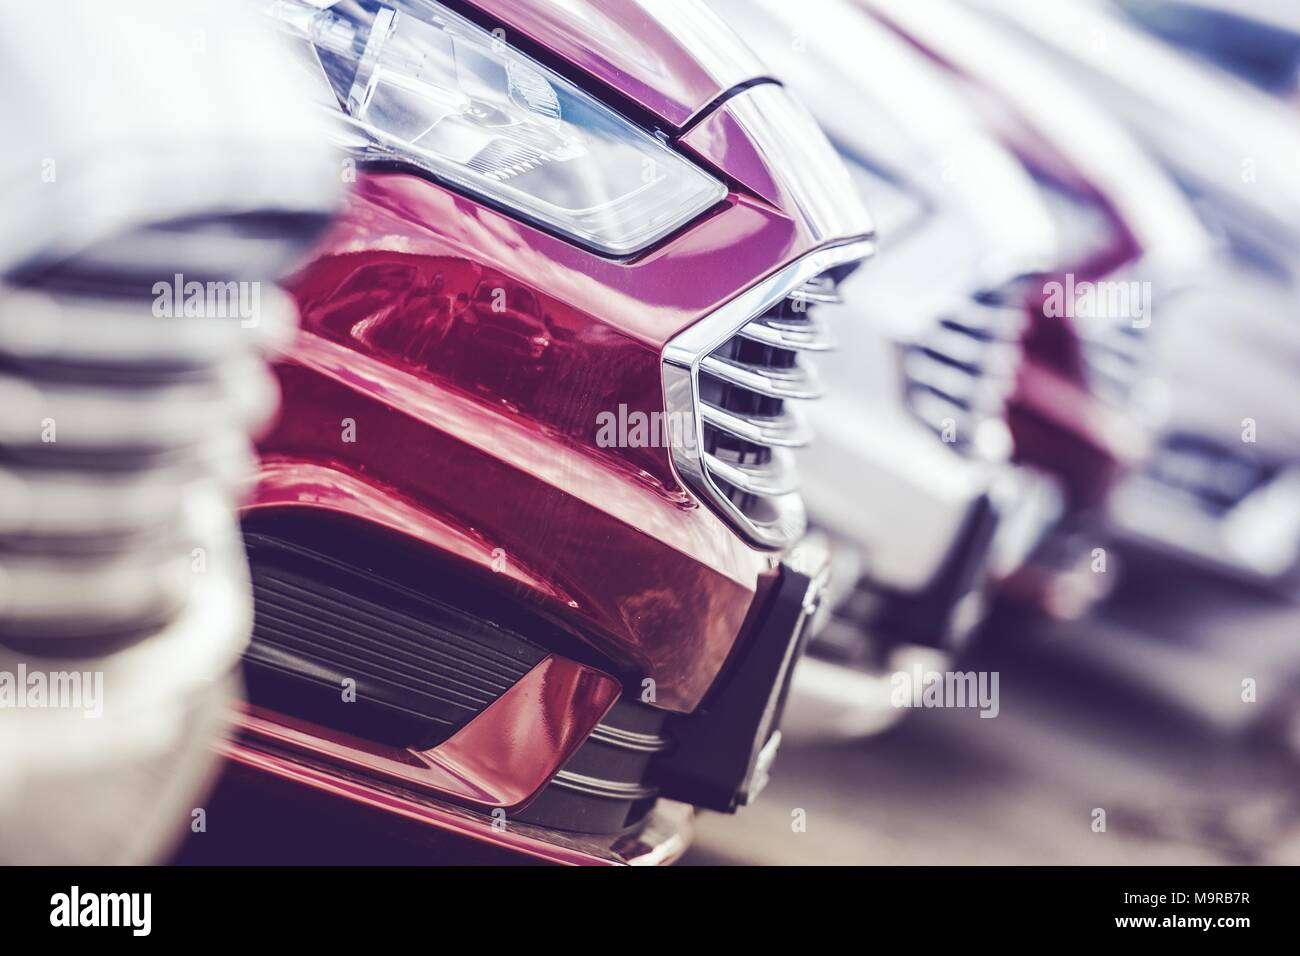 Automotive Industry Concept. New Cars Production Line. Brand New Vehicles on the Factory Lot. - Stock Image